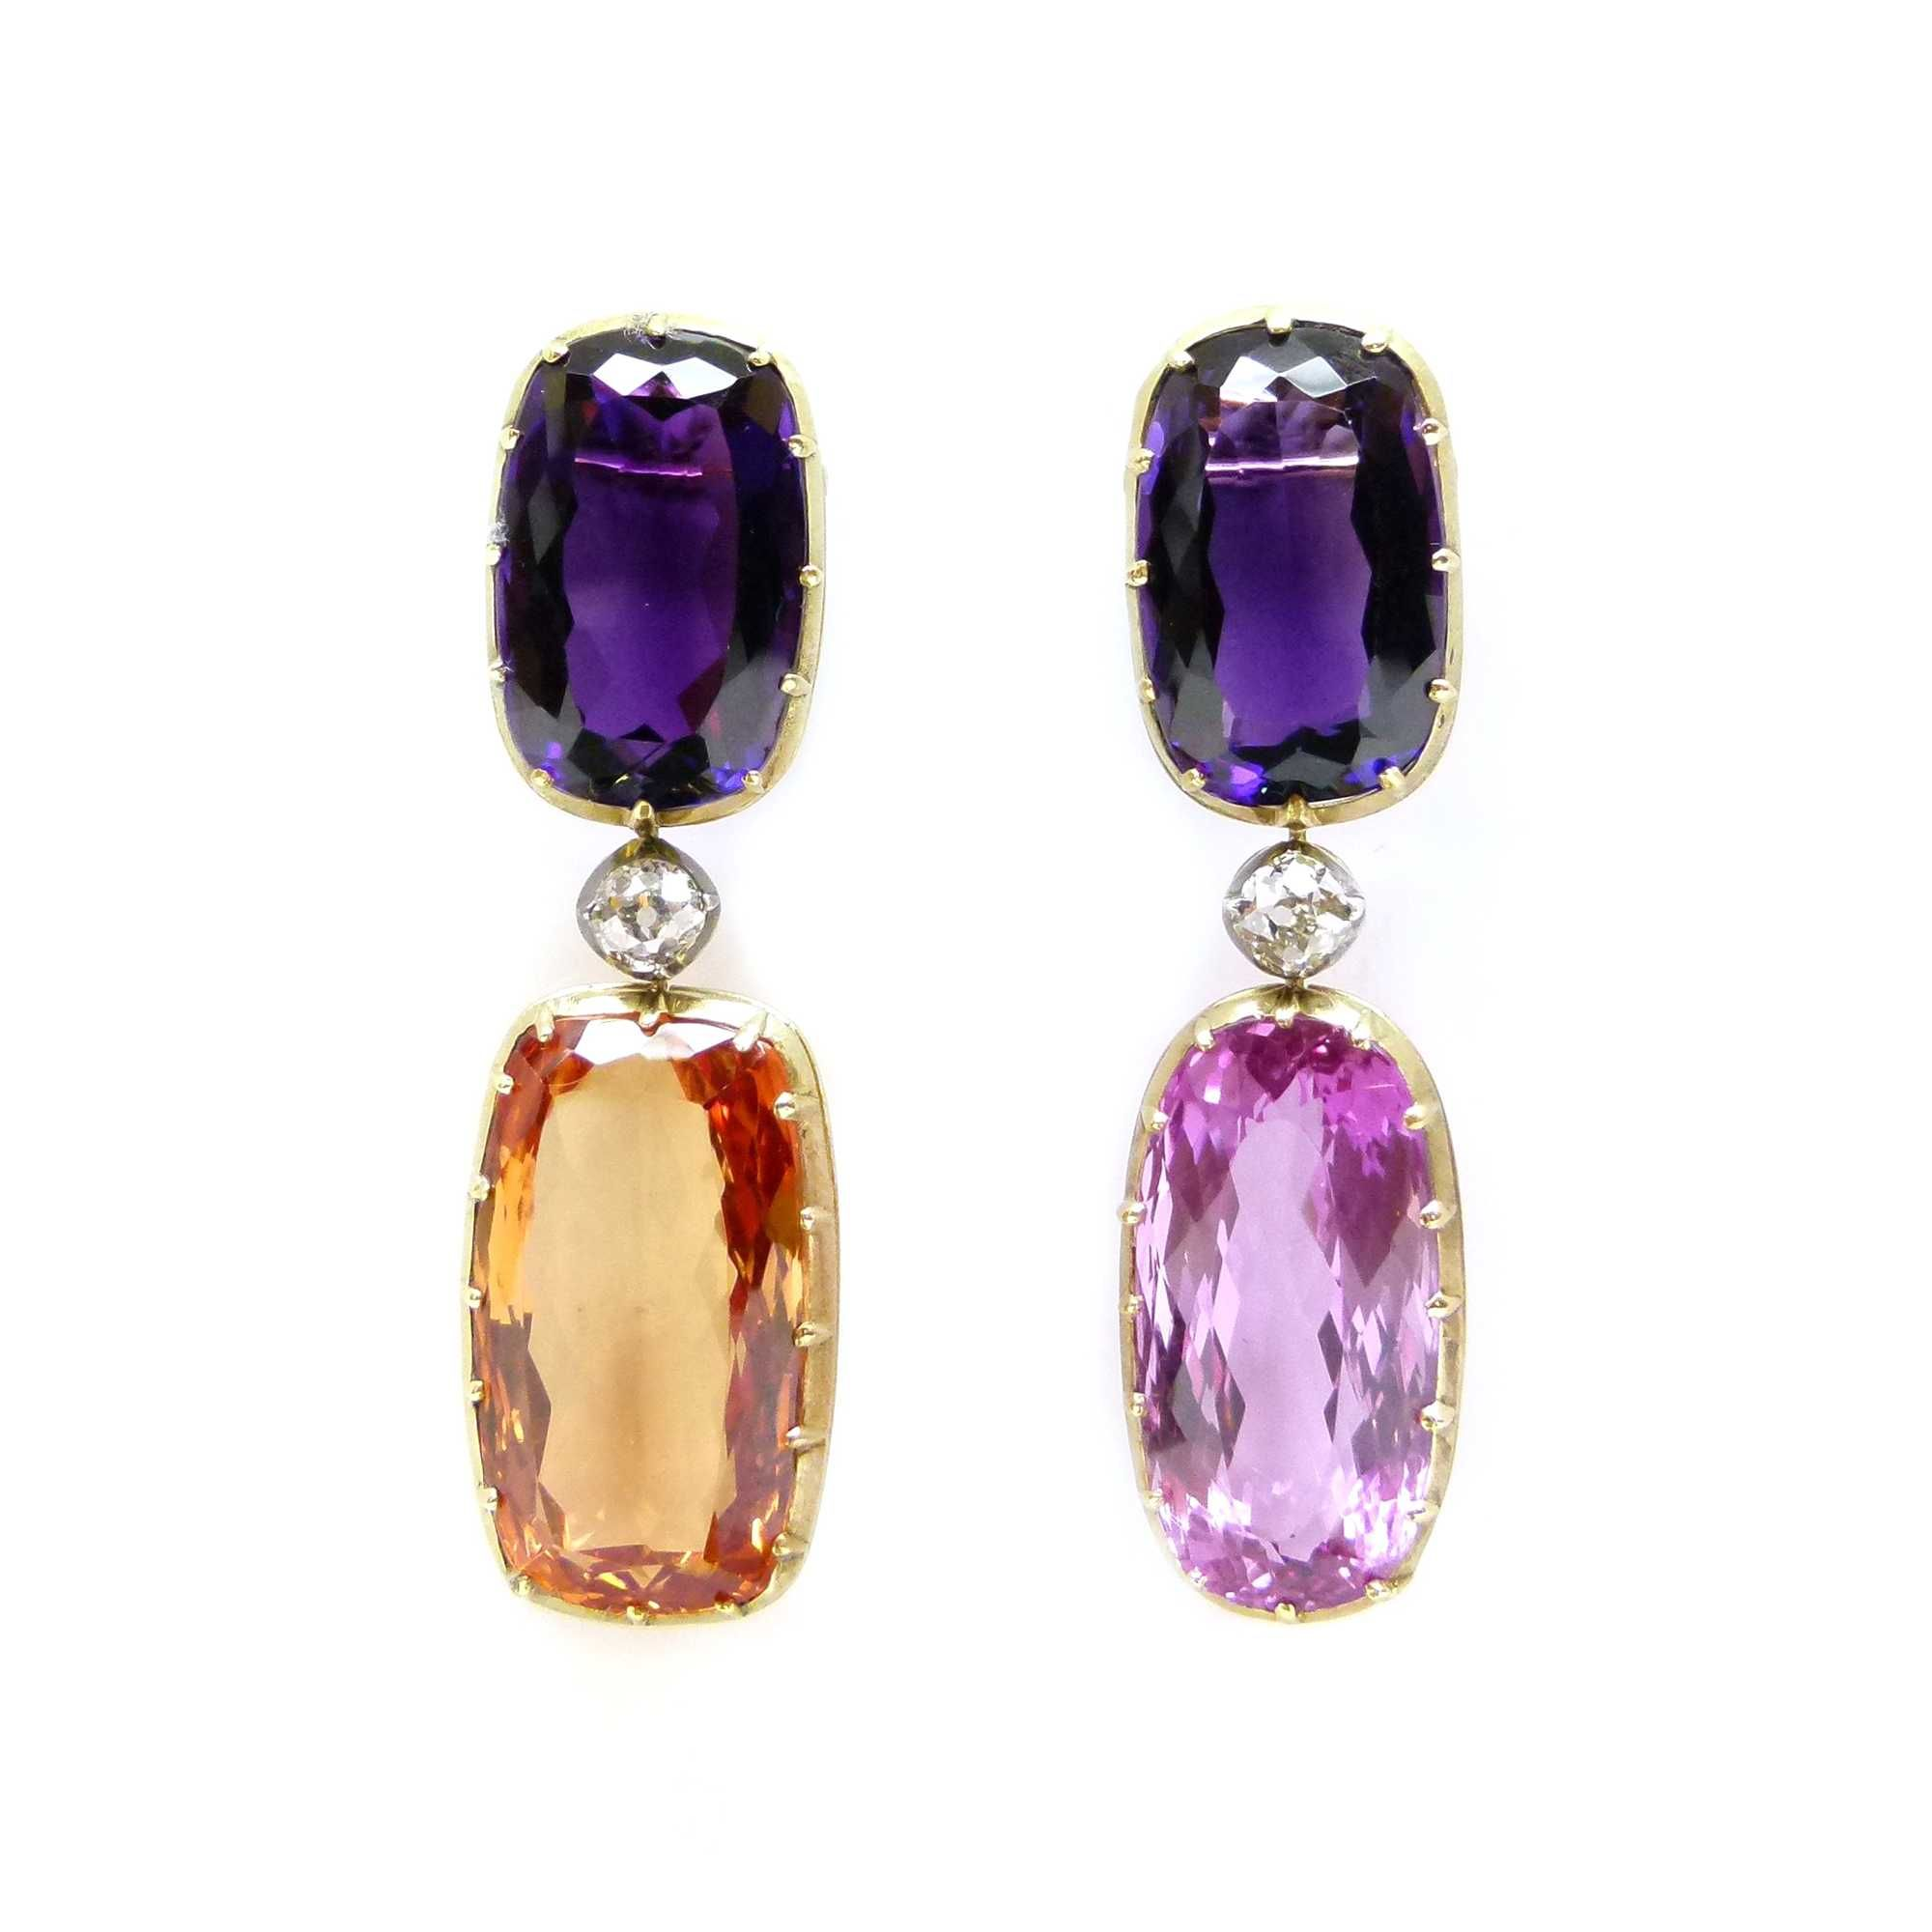 Pair of topaz amethyst and diamond pendant earrings each formed of